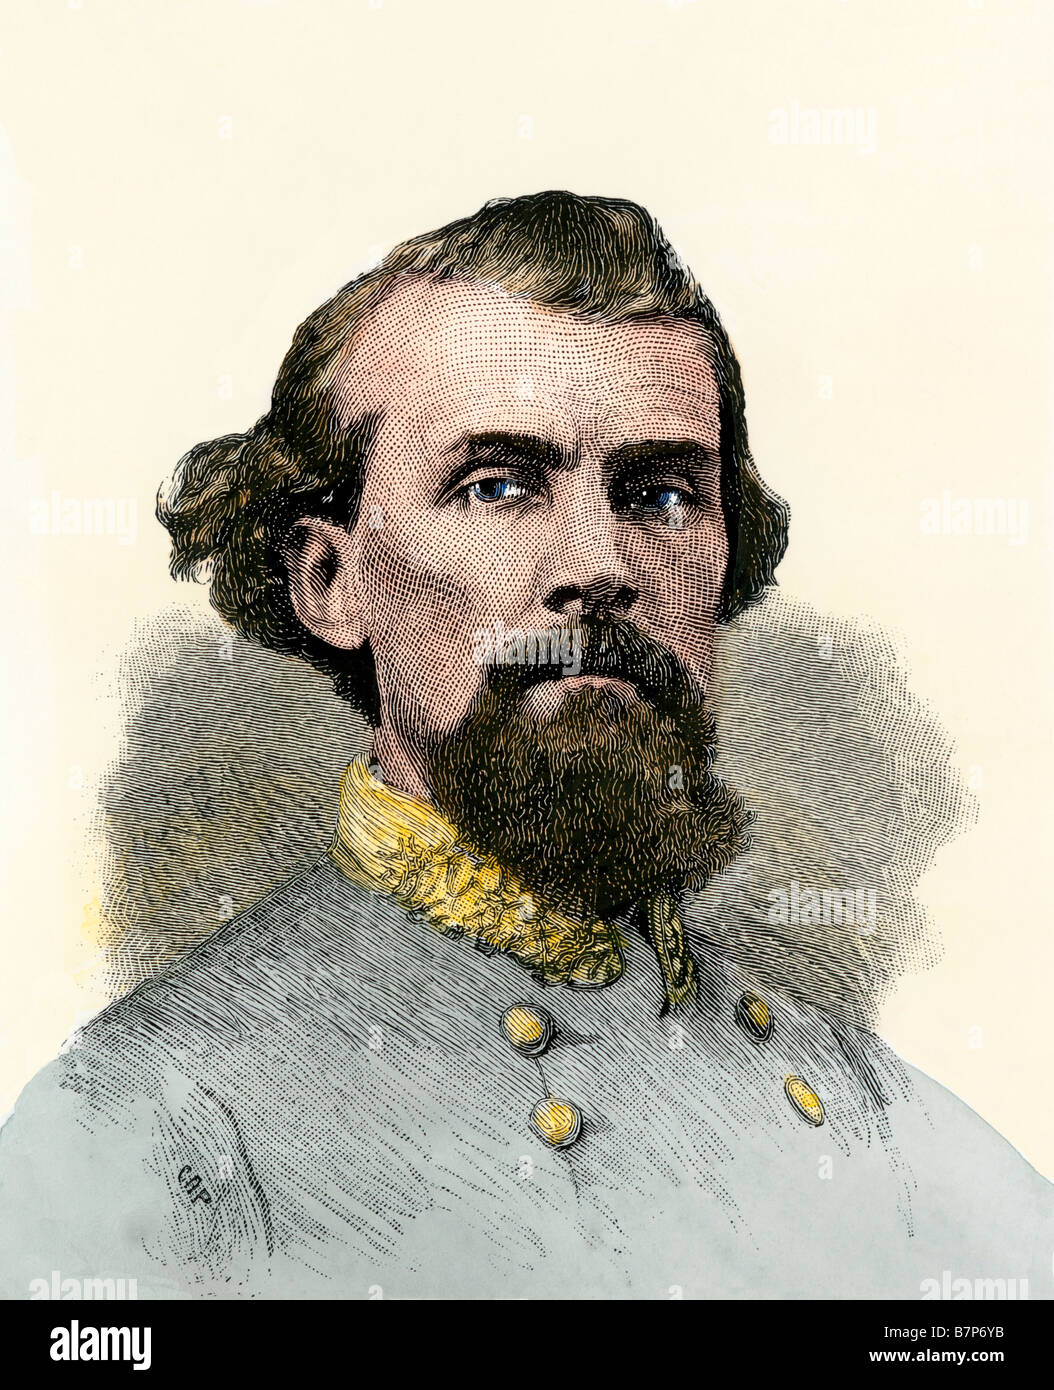 Confederate General Nathan Bedford Forrest in the Civil War. Hand-colored woodcut - Stock Image